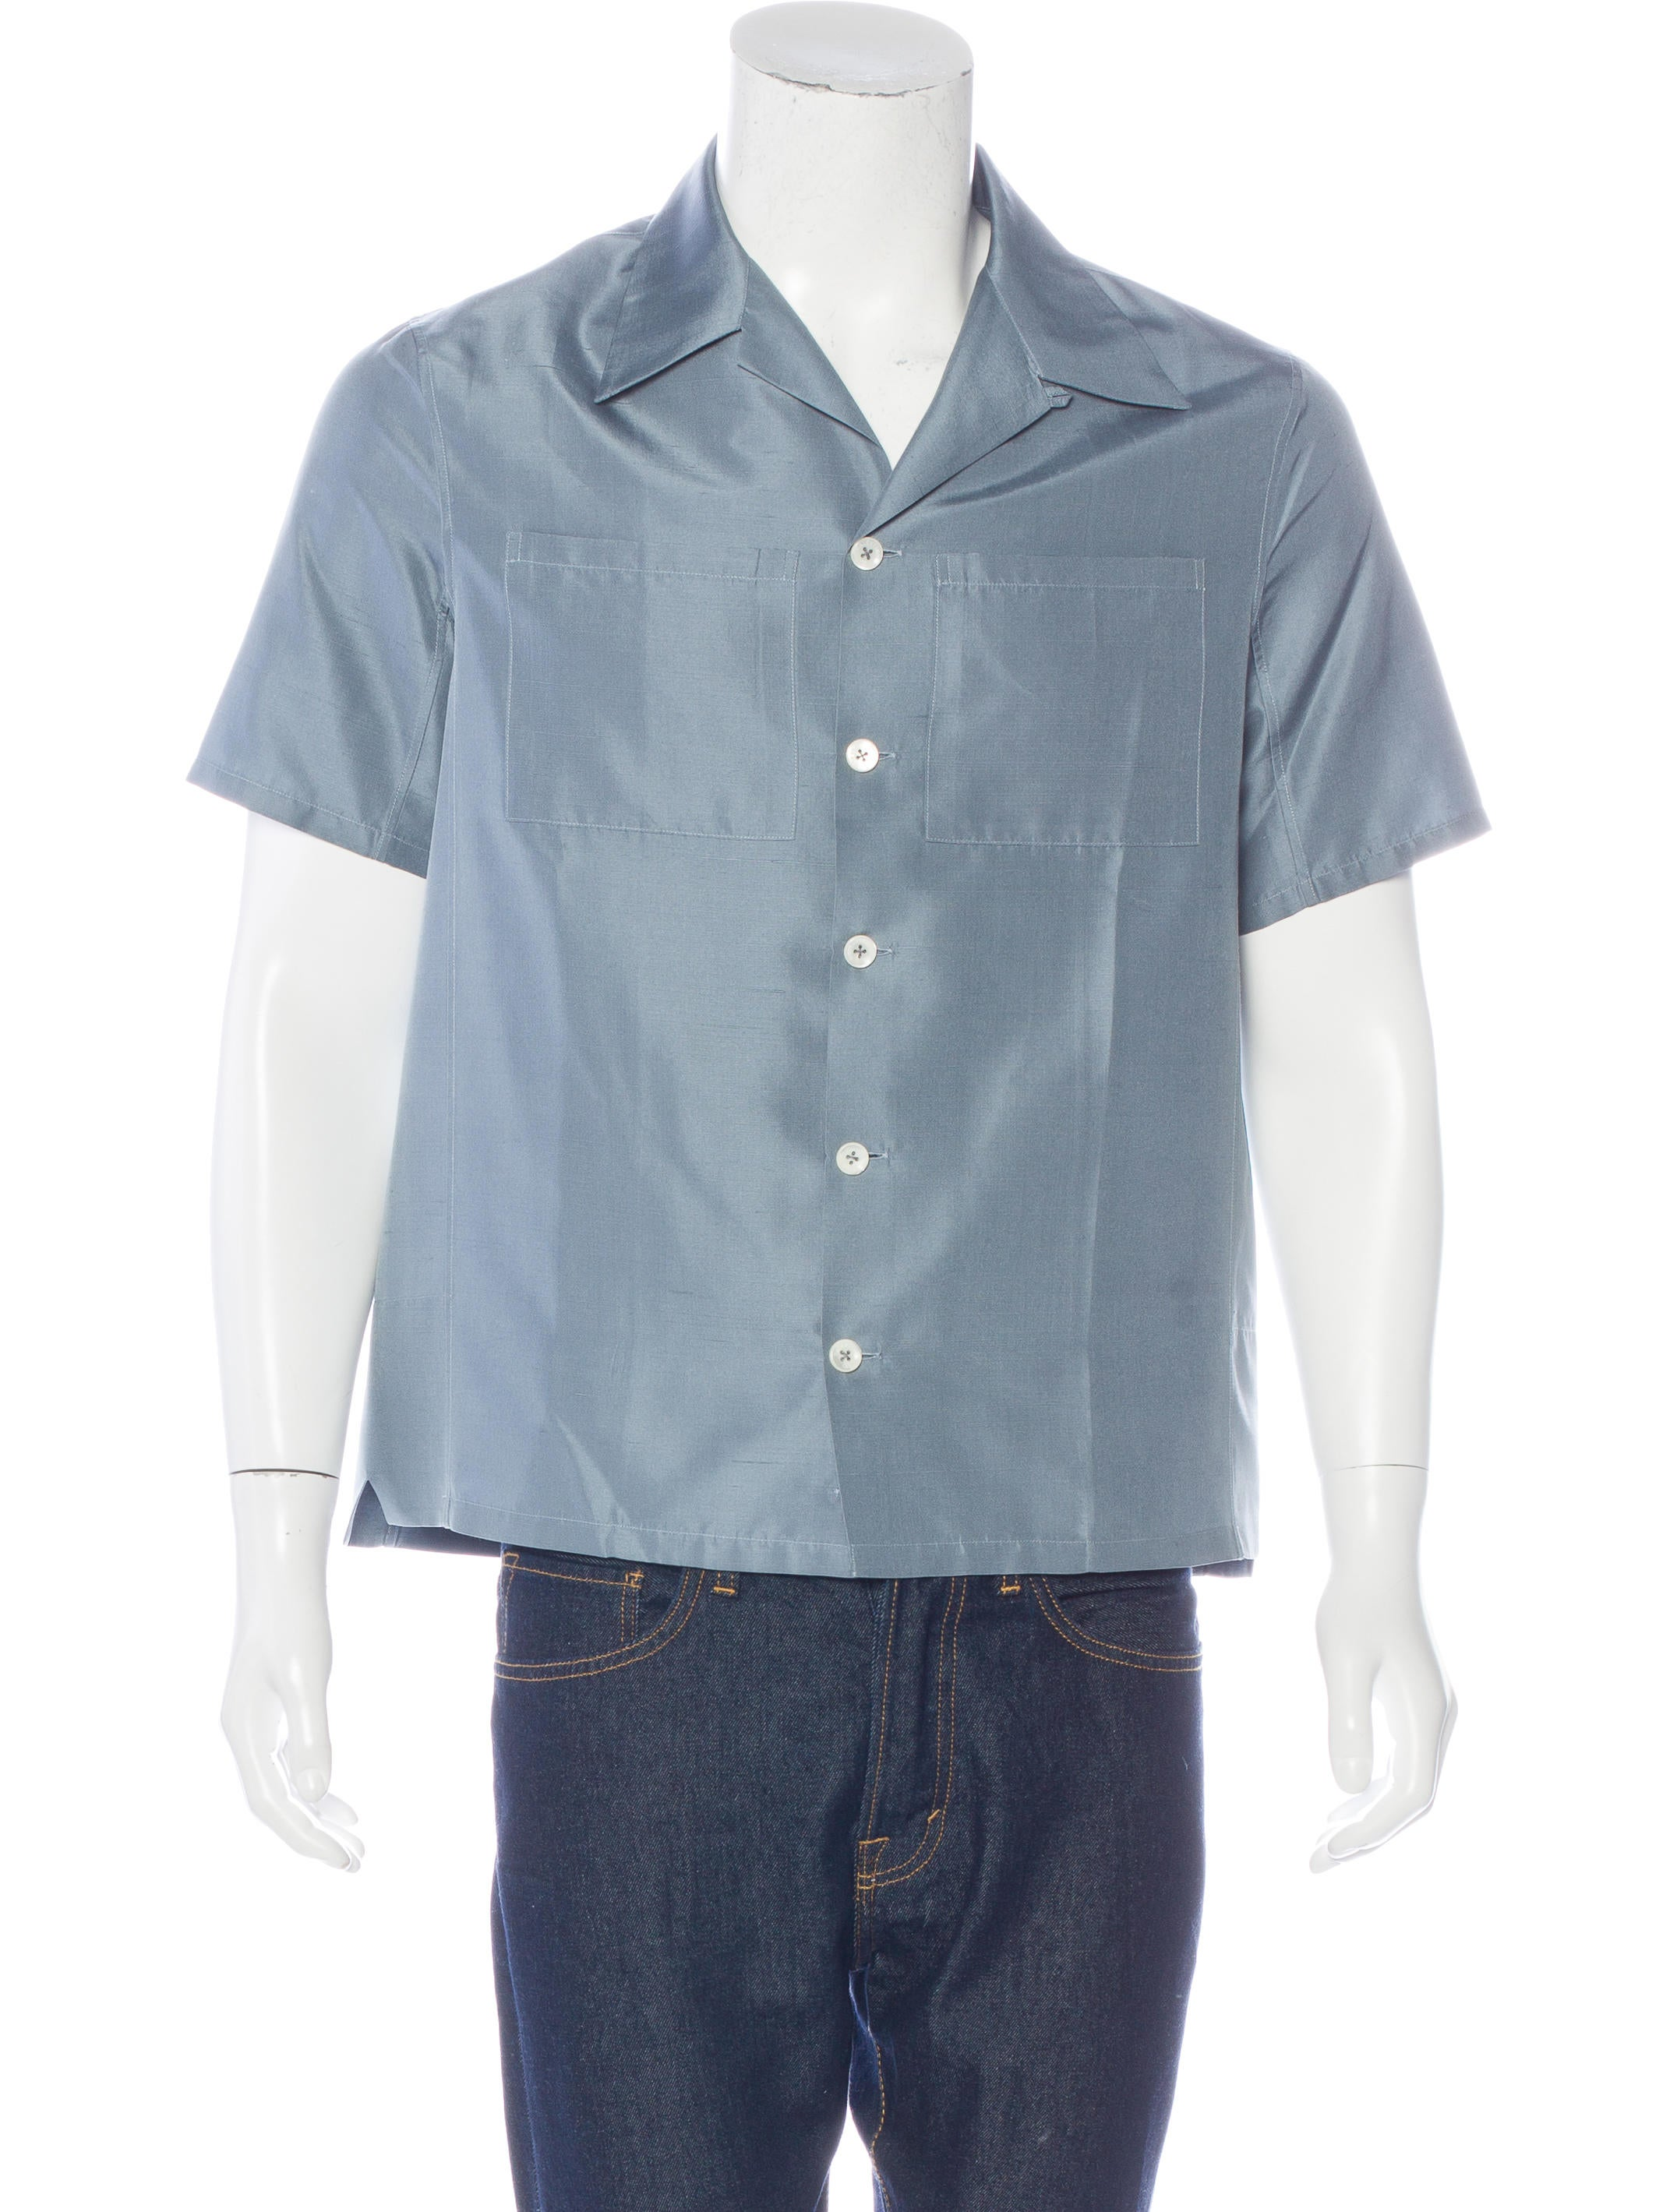 Short Sleeve Casual Button-Down Shirts. Narrow by Brand. Tommy Bahama. Quiksilver. INC International Concepts. Tommy Hilfiger. Cubavera. Alfani. Polo Ralph Lauren. See More. Tommy Bahama Men's Weekend Tropics Silk Shirt, Created for Macy's $ Free ship at $ Enjoy Free Shipping at $75! See exclusions.